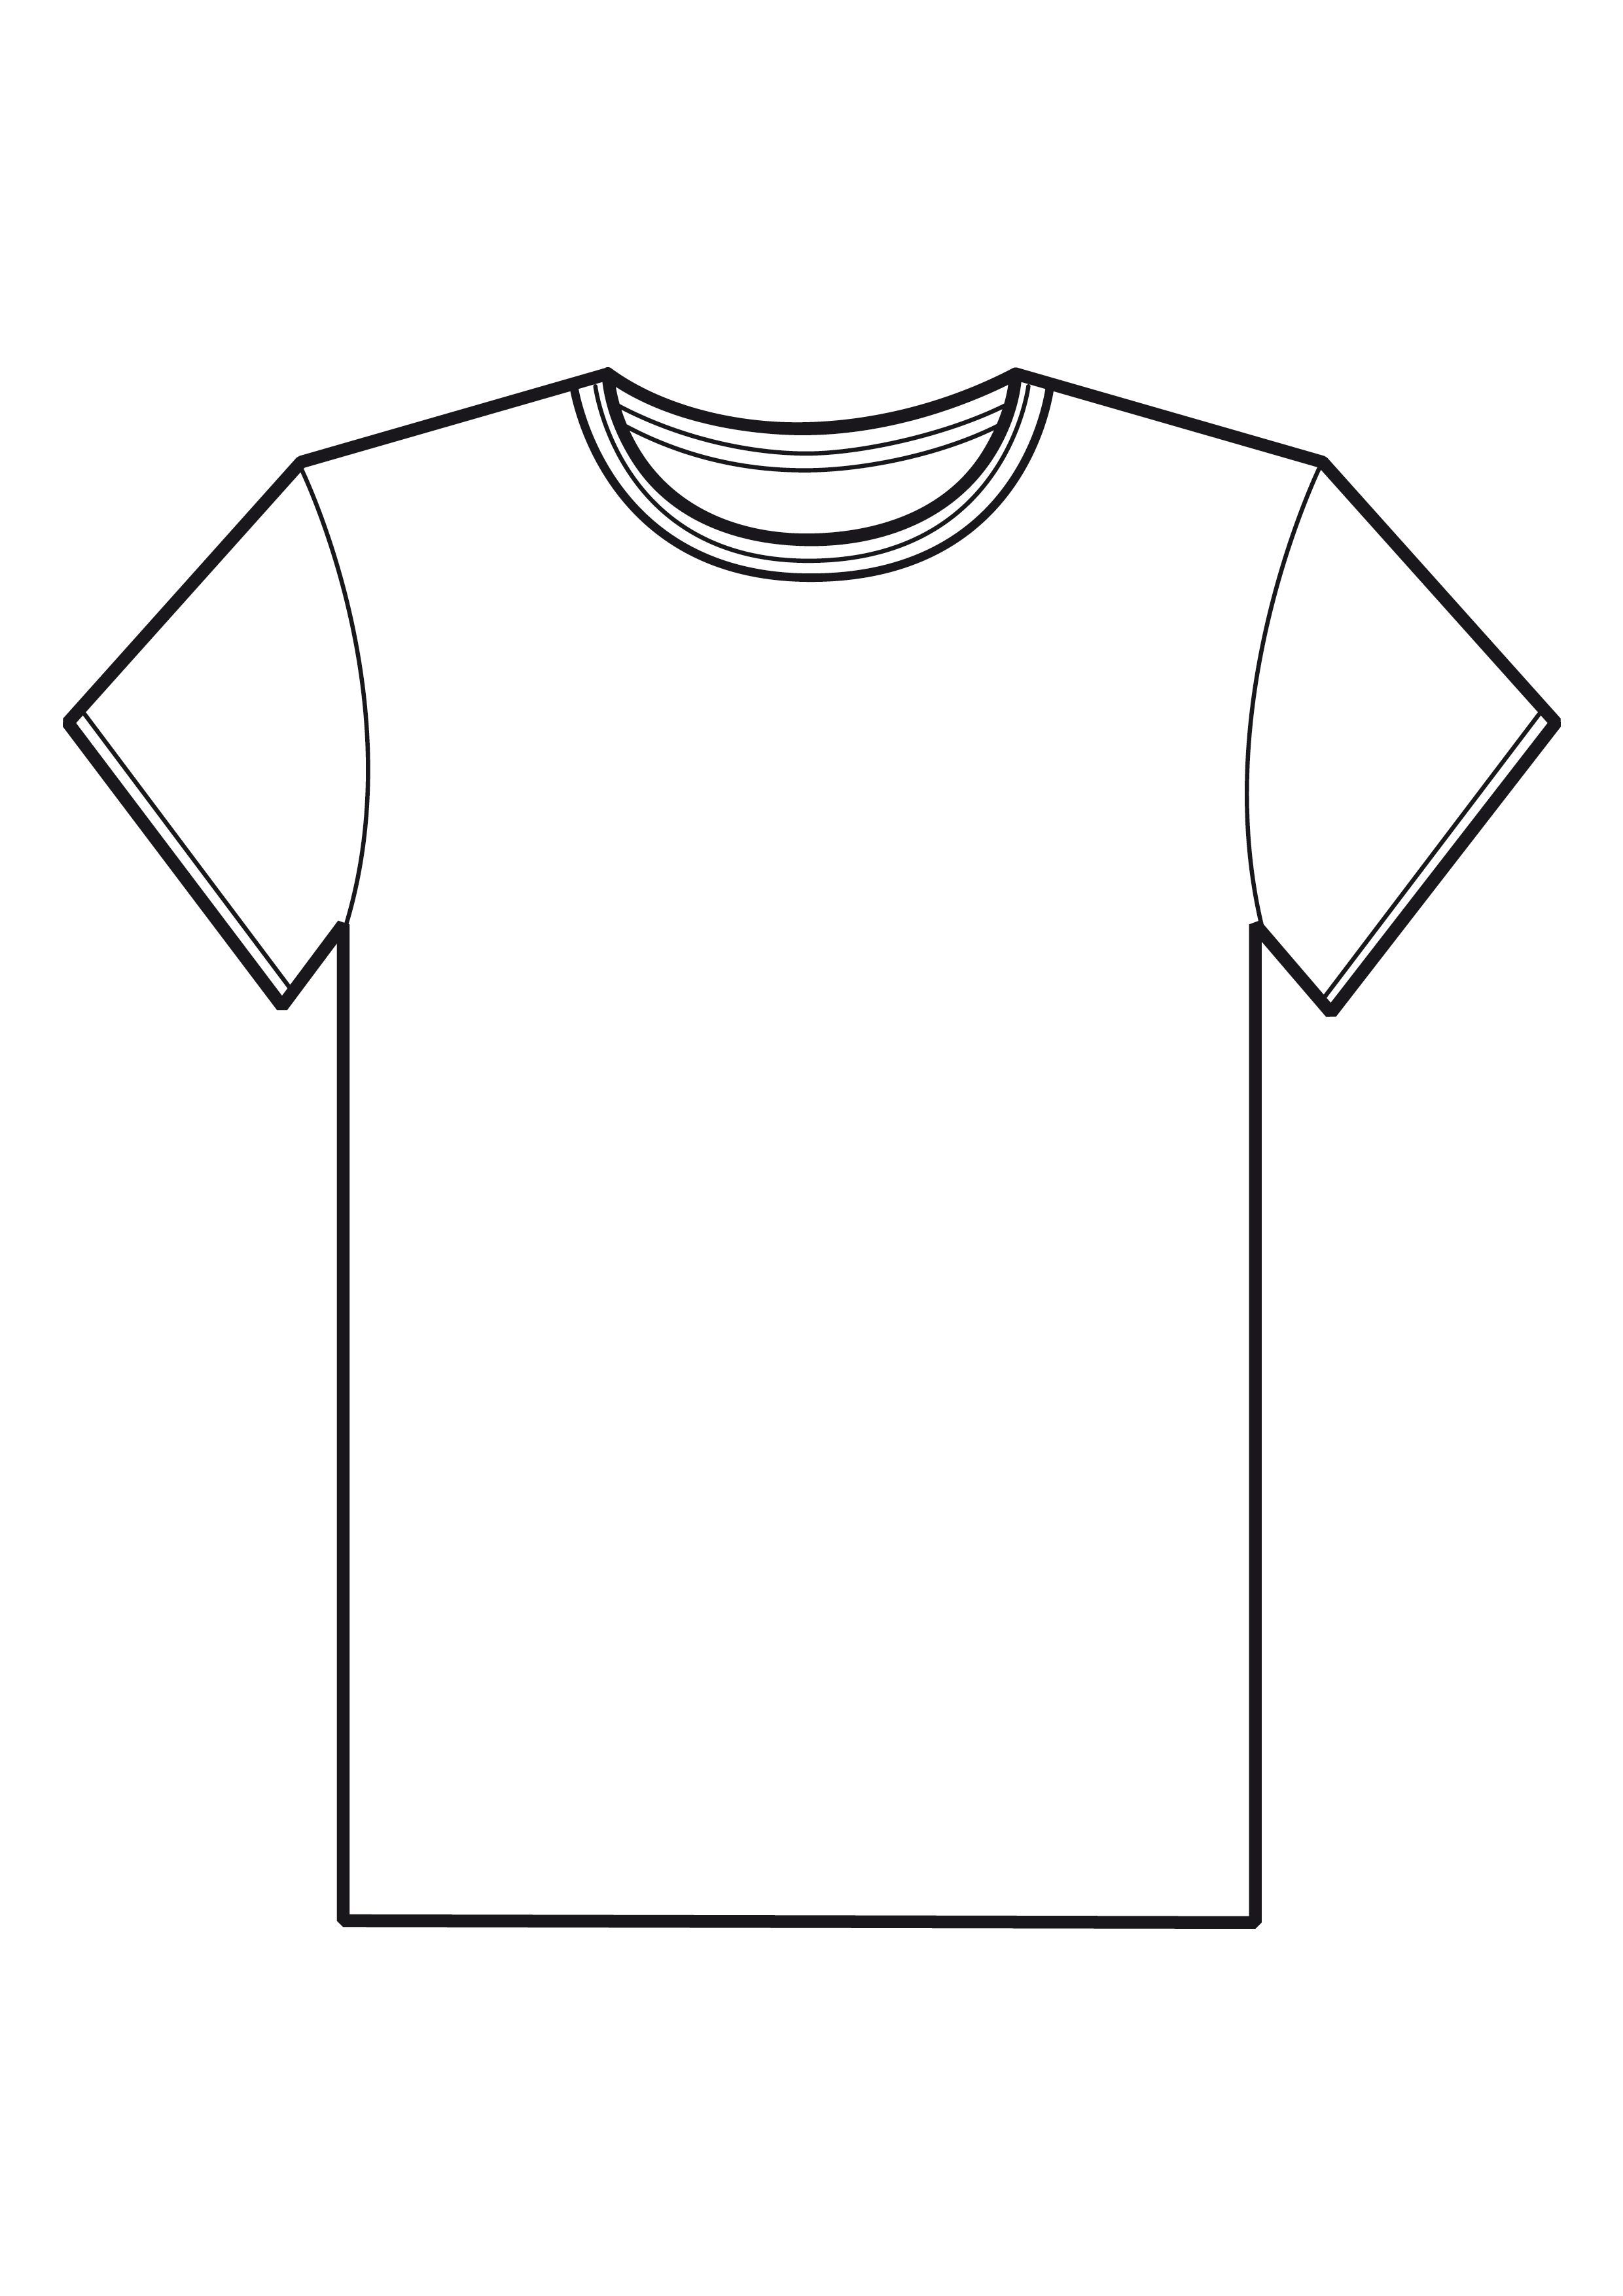 2491 Views Blank T Shirts T Shirt Picture Shirt Clipart